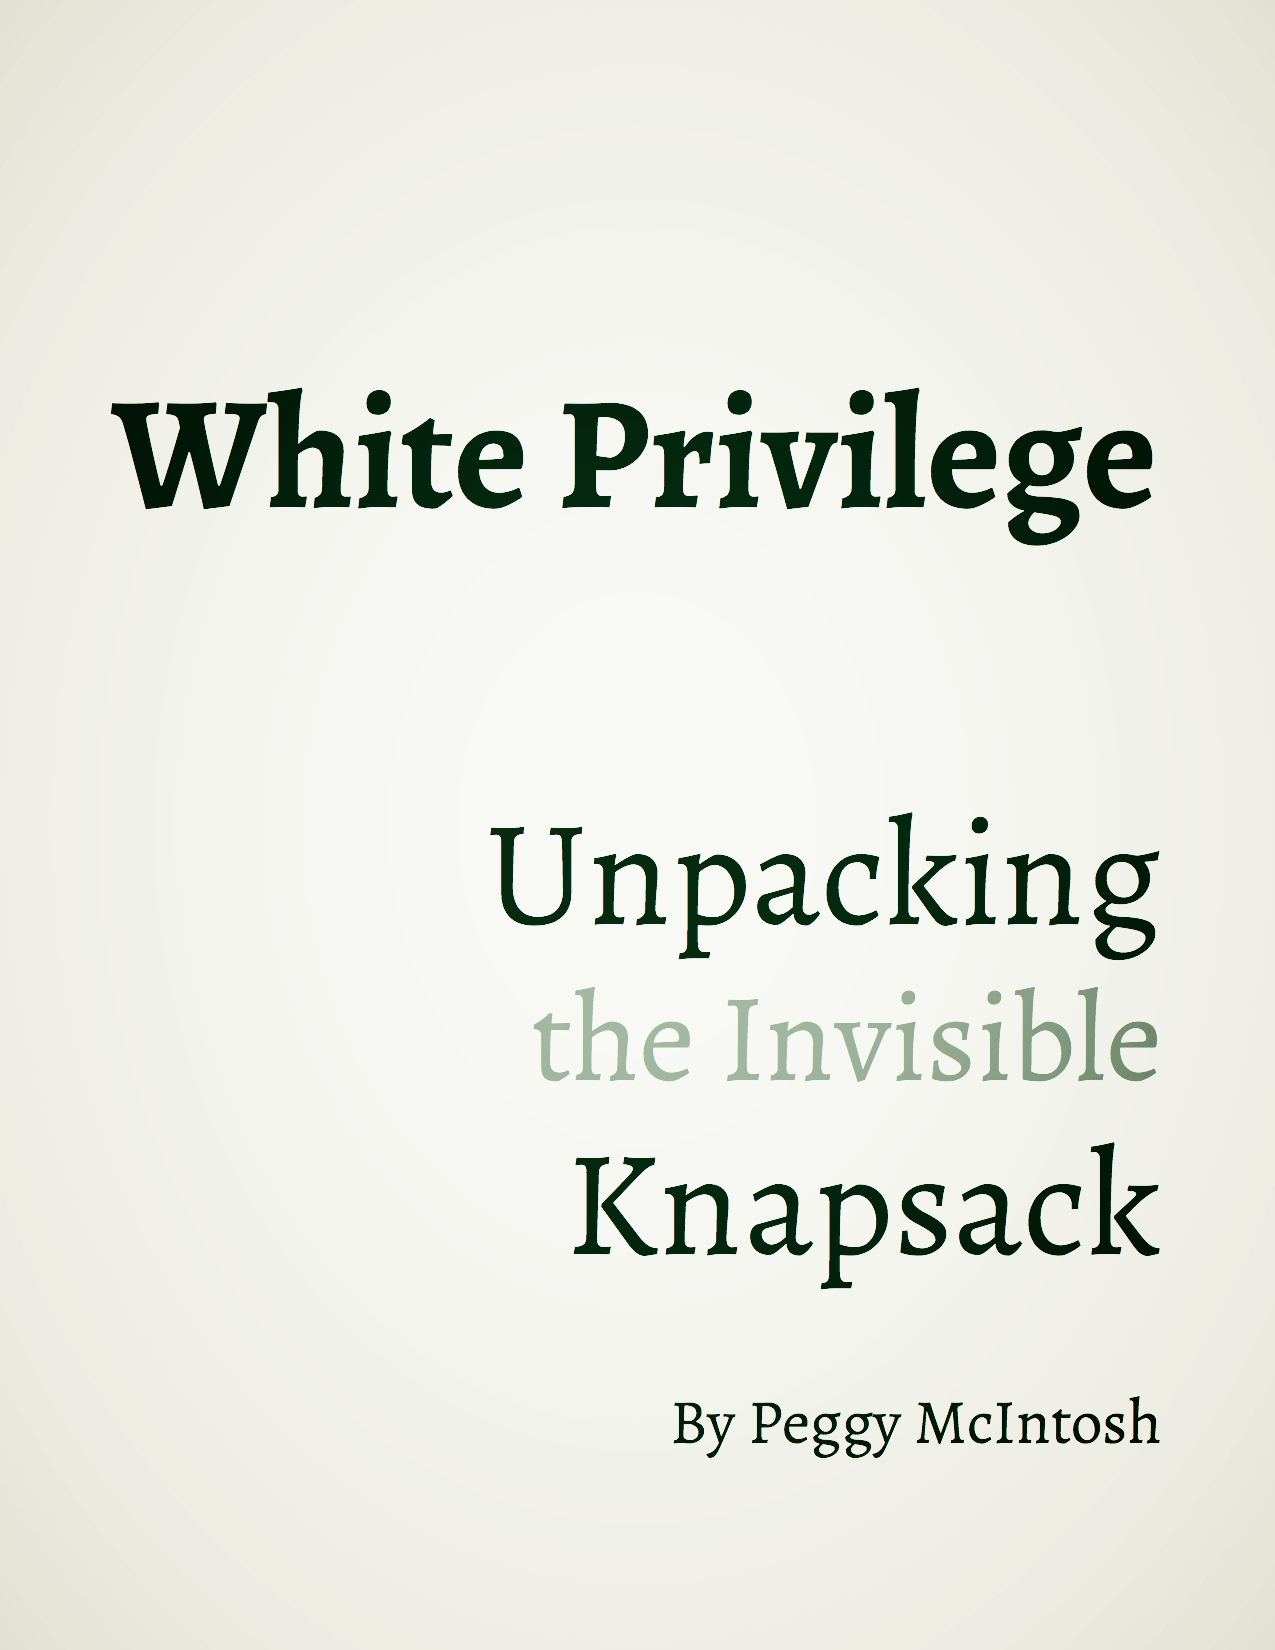 Peggy McIntosh's article,  White Privilege: Unpacking the Invisible Knapsack,  is a brief and classic work that gives examples of how white people may experience privilege in their daily life. Simply becoming aware of what privilege looks like and how it can manifest in our lives is a crucial step!